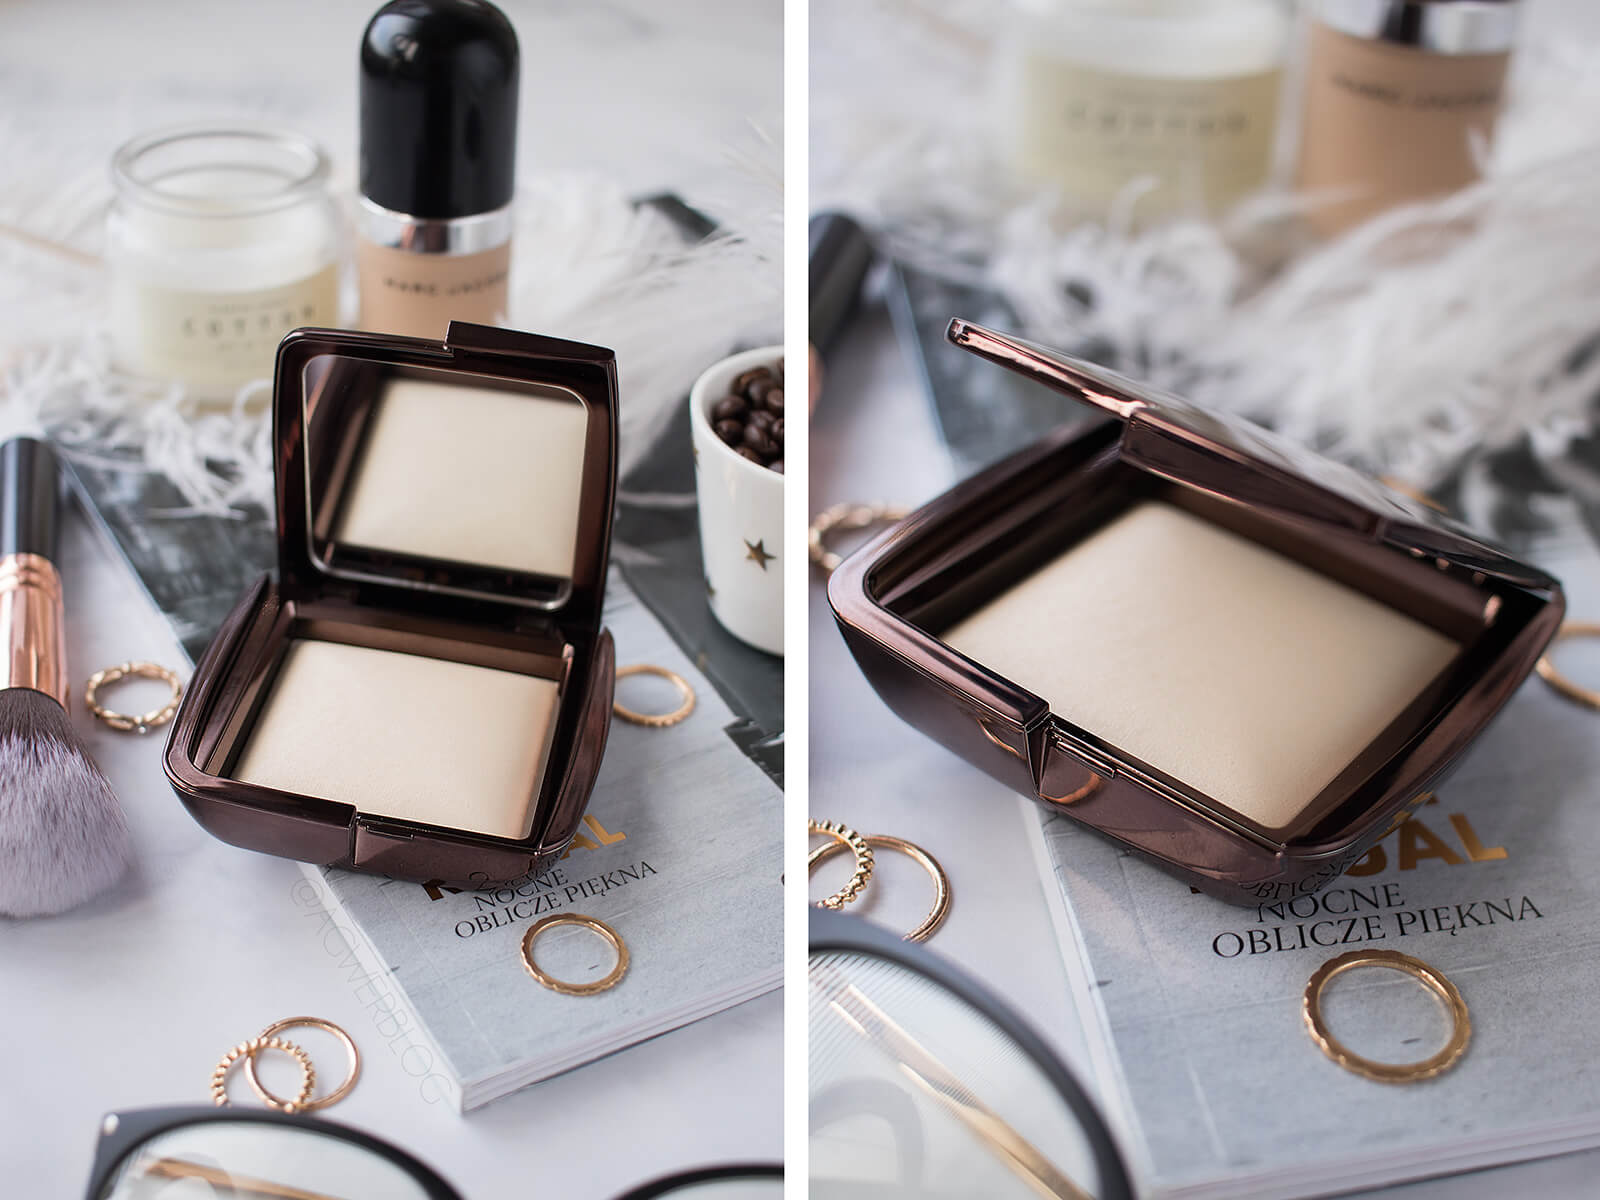 hourglass ambient light diffused light cena